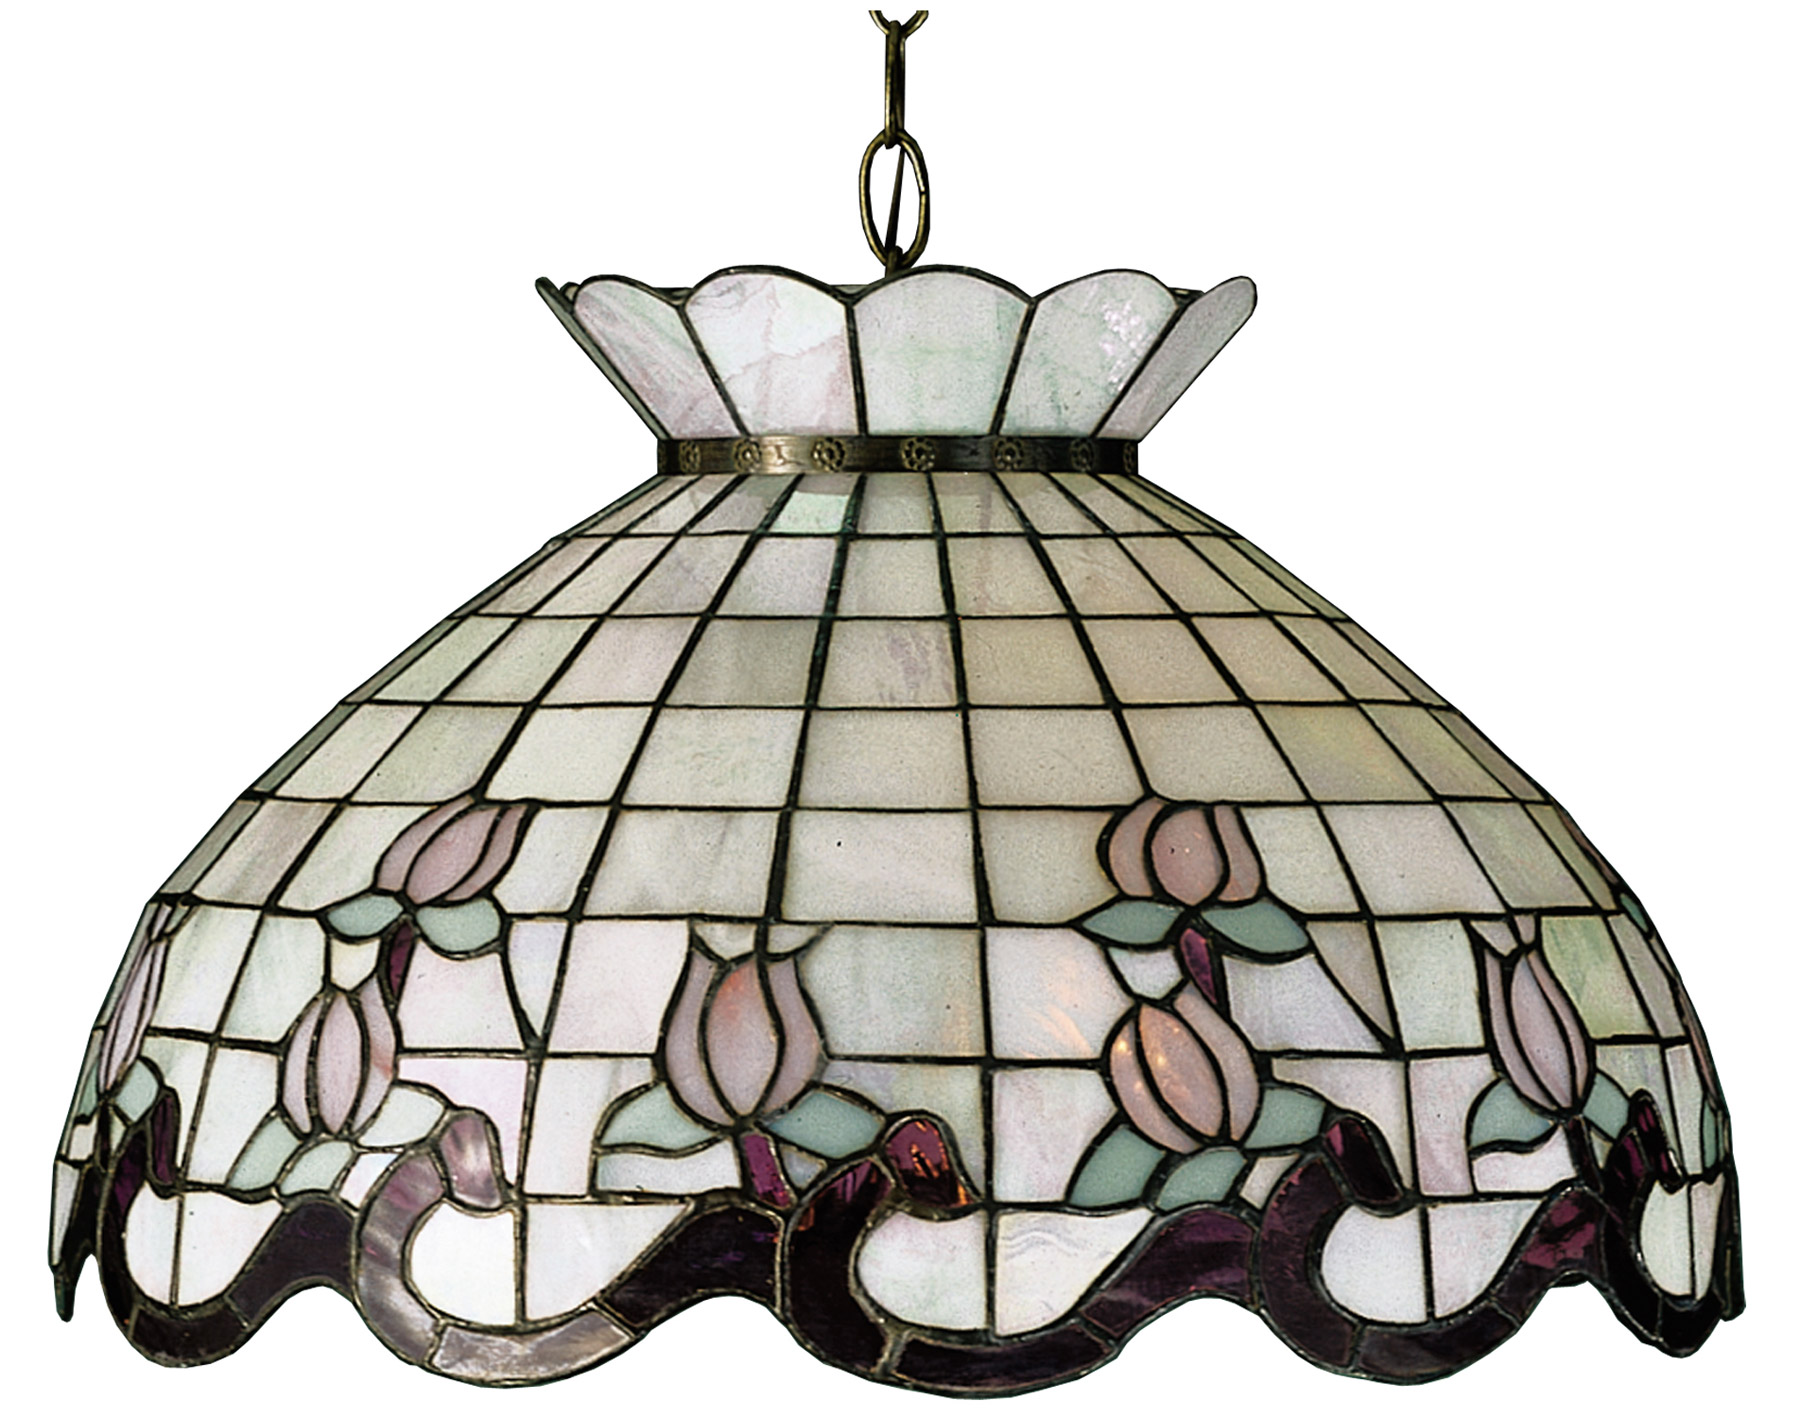 meyda tiffany roseborder hanging lamp - Meyda Tiffany